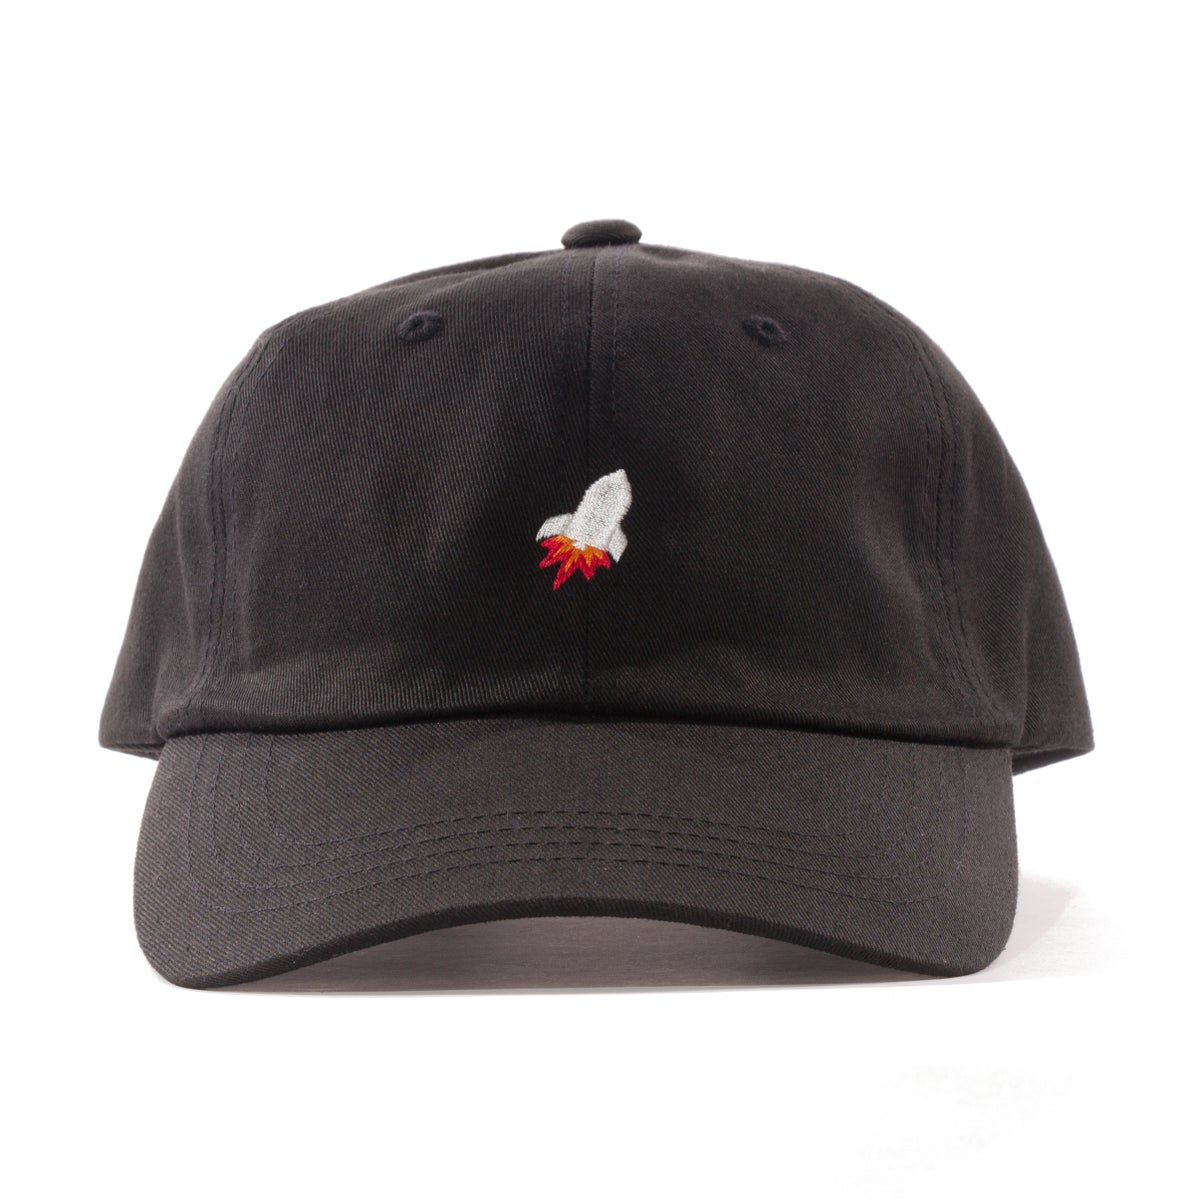 Image of Rocket Strapback Cap (Black)